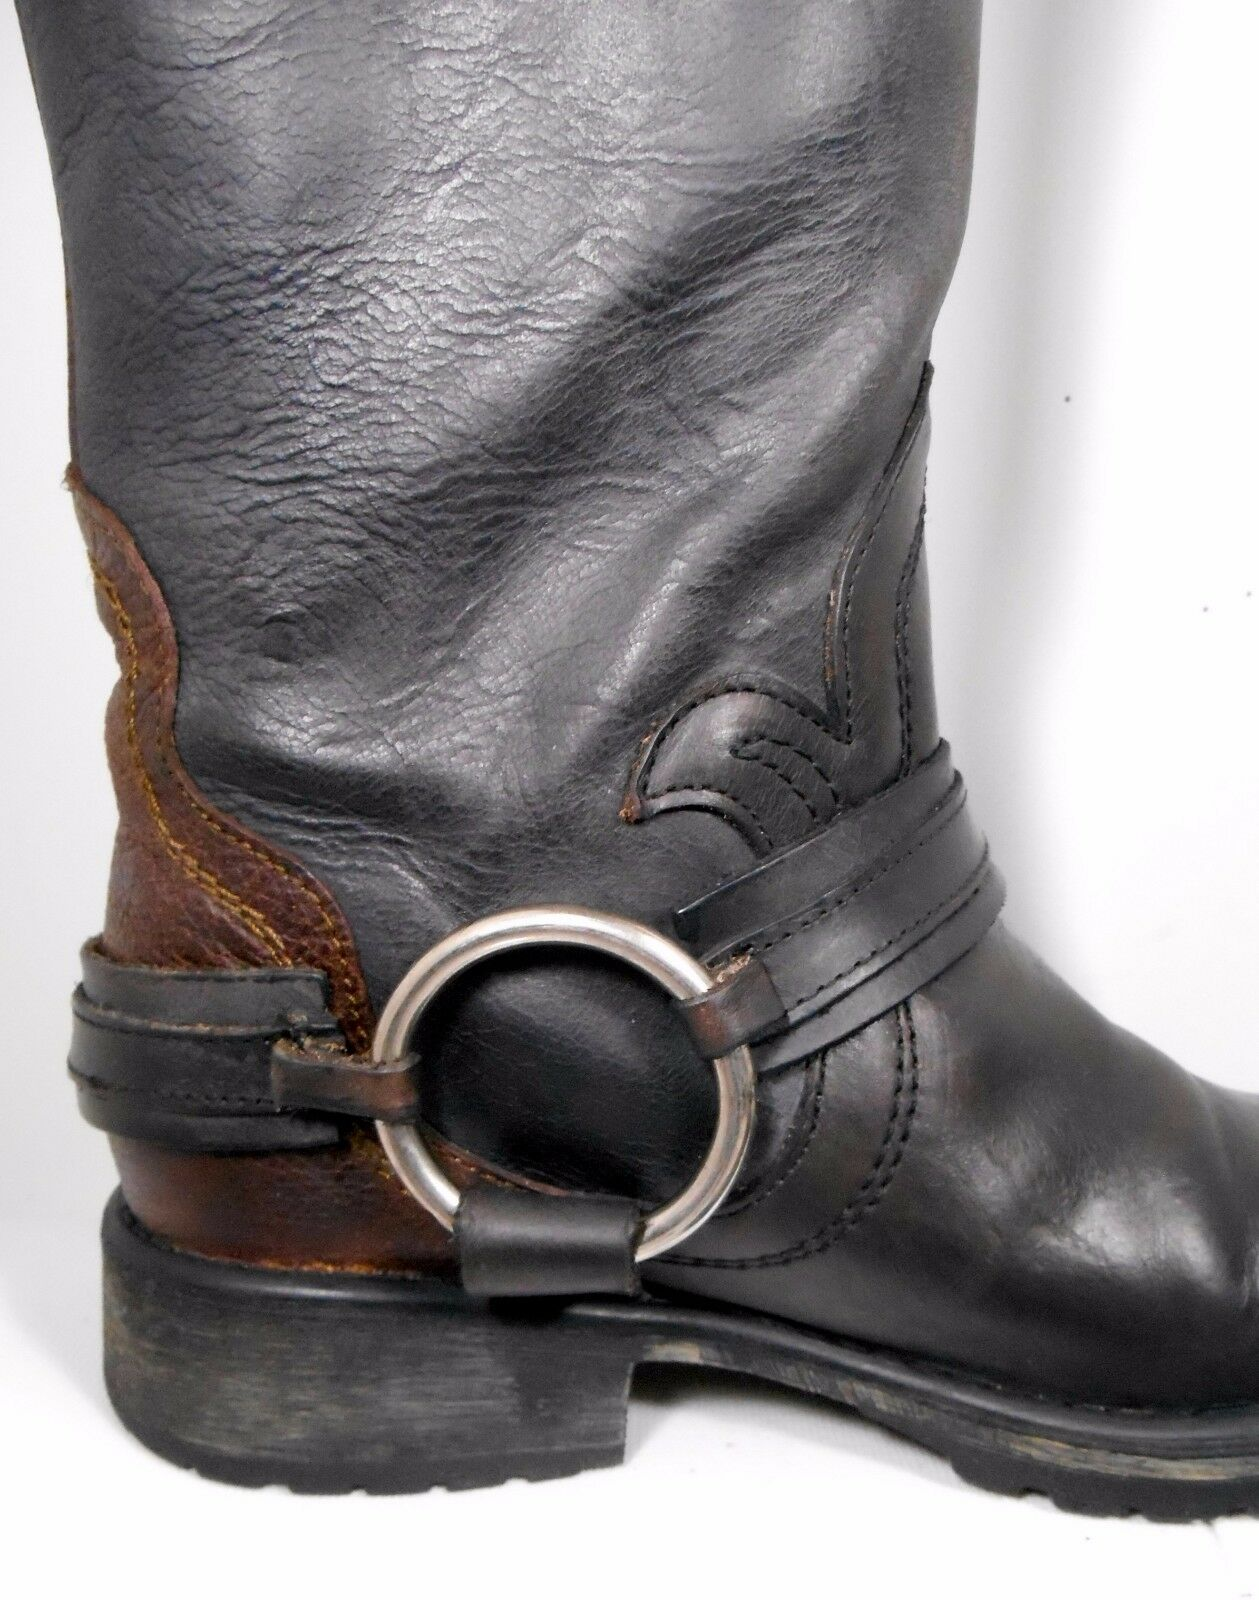 Steve Madden Judgement Distress Leather Riding Biker démarrage femmes US 5 Light Wear